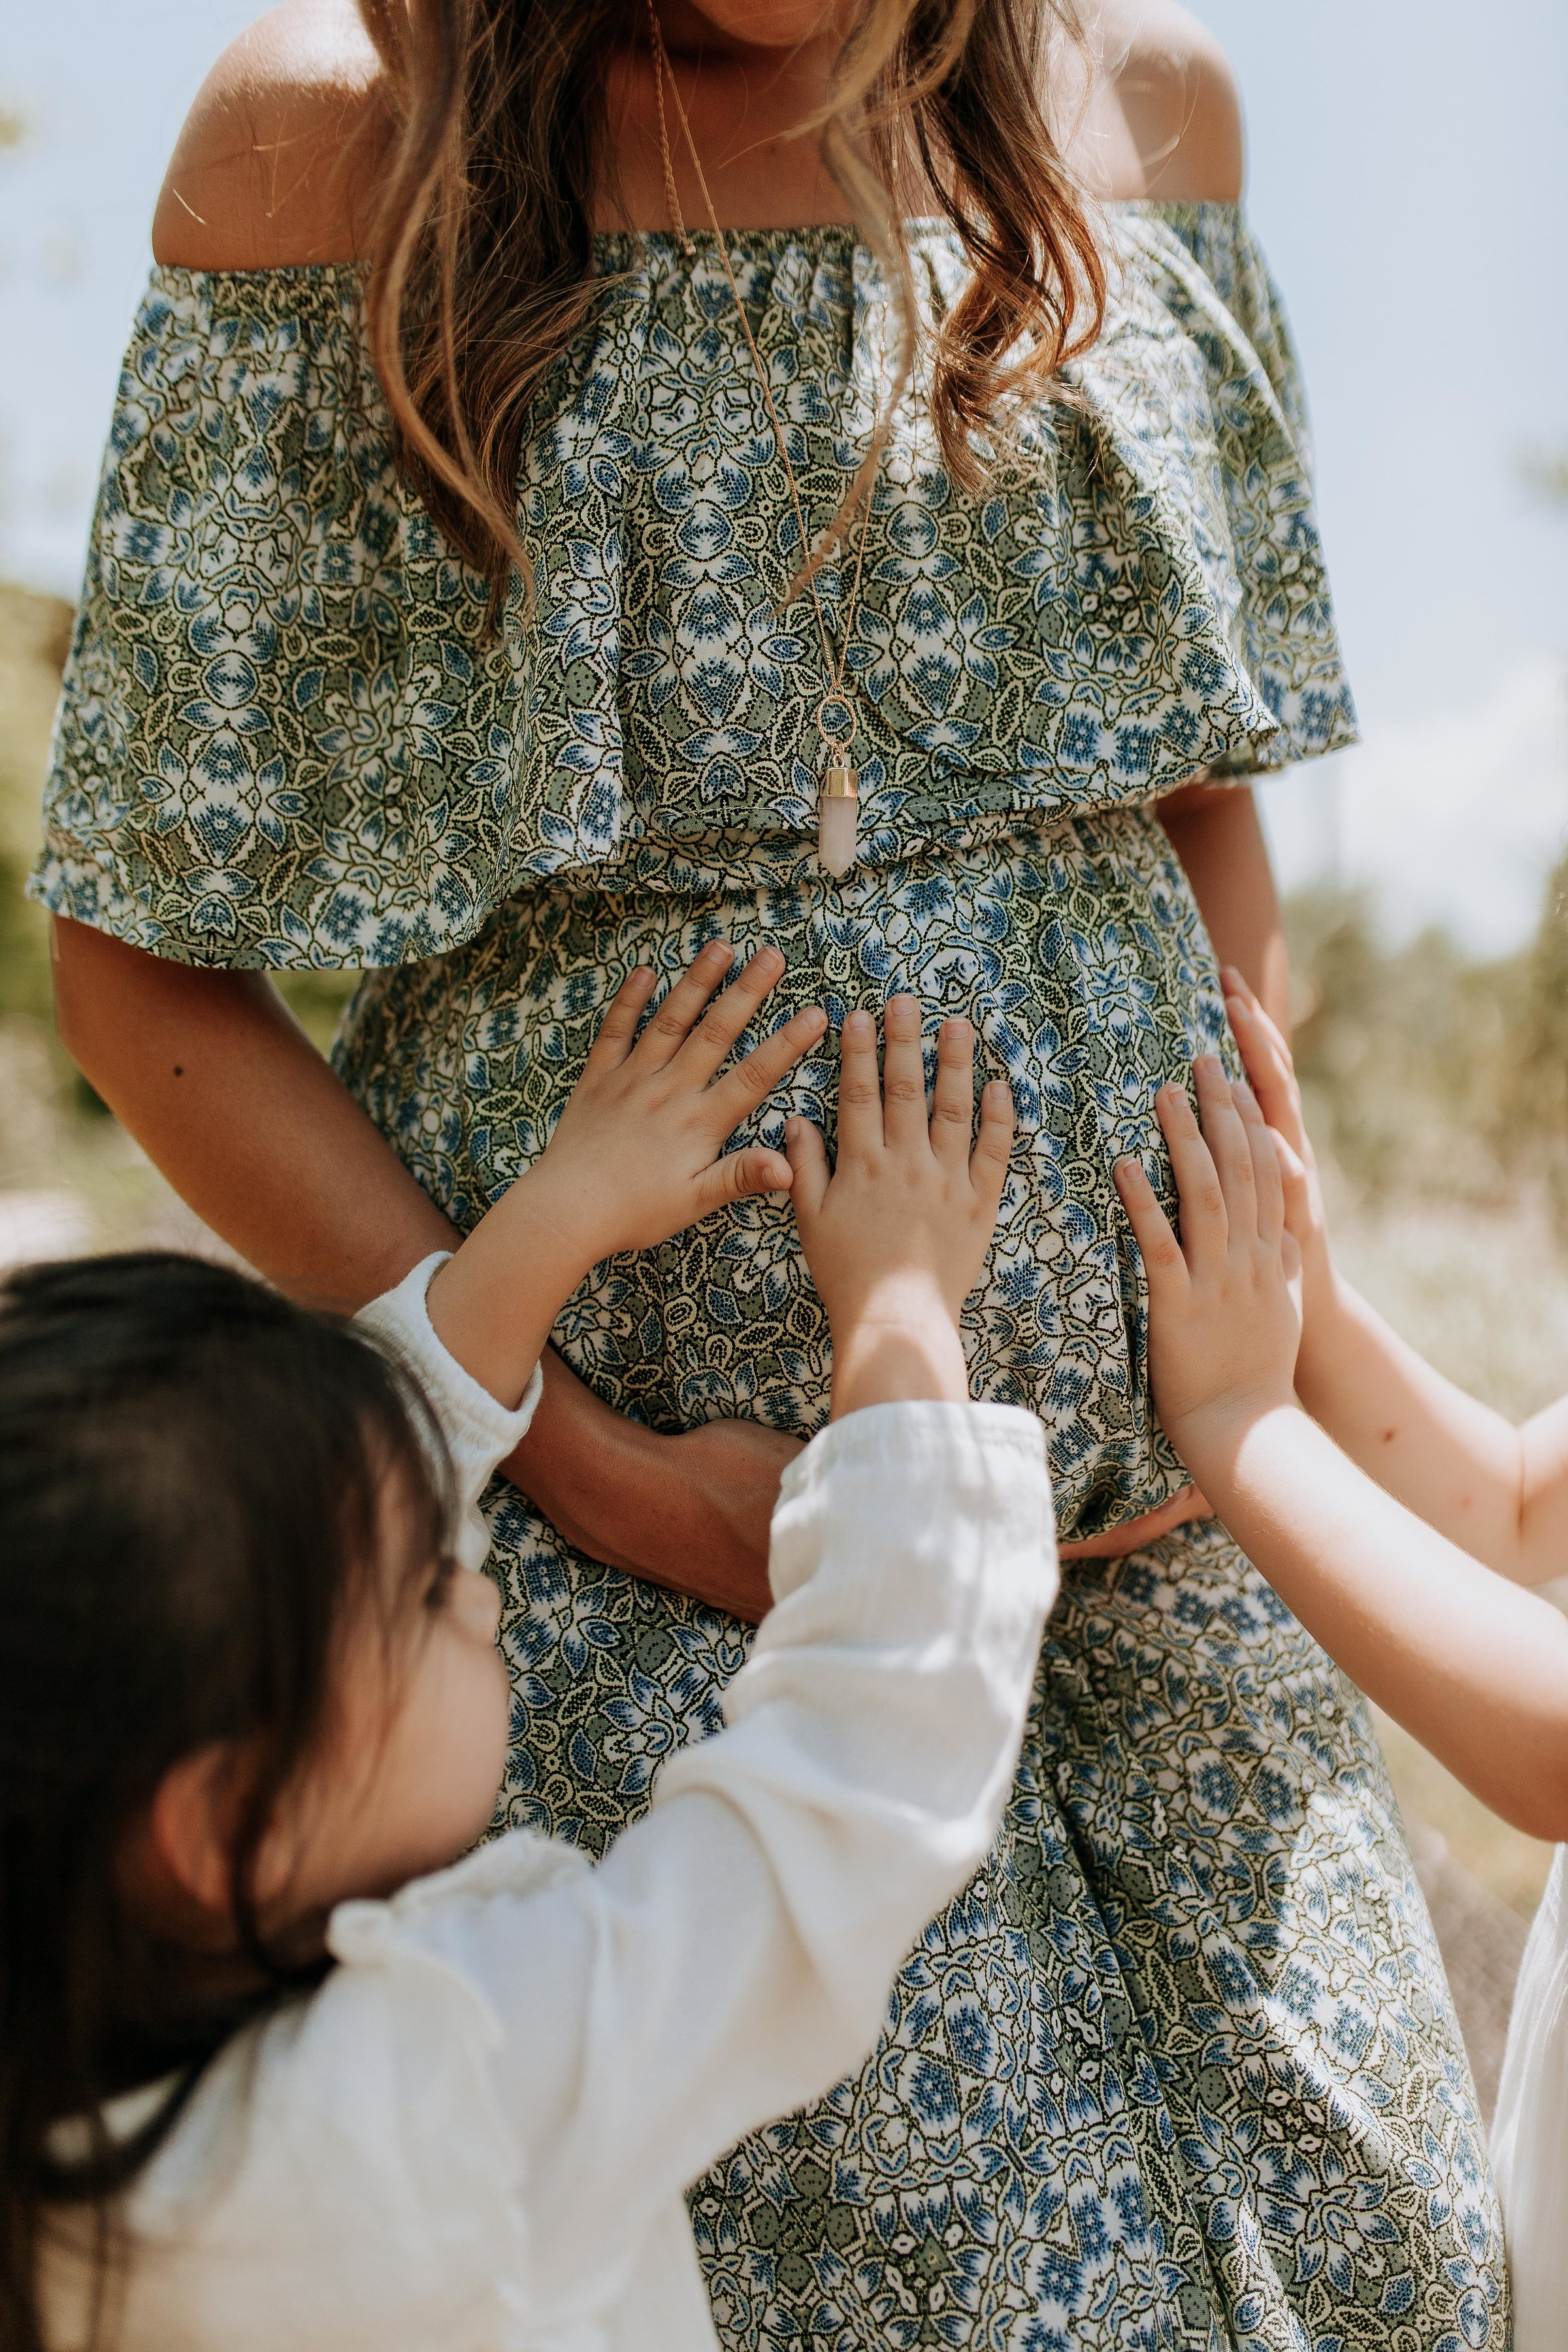 maternity photos, maternity session, maternity photography, family photos, family session, sibling photos, poses, outfits, with siblings, outdoor, ideas, family